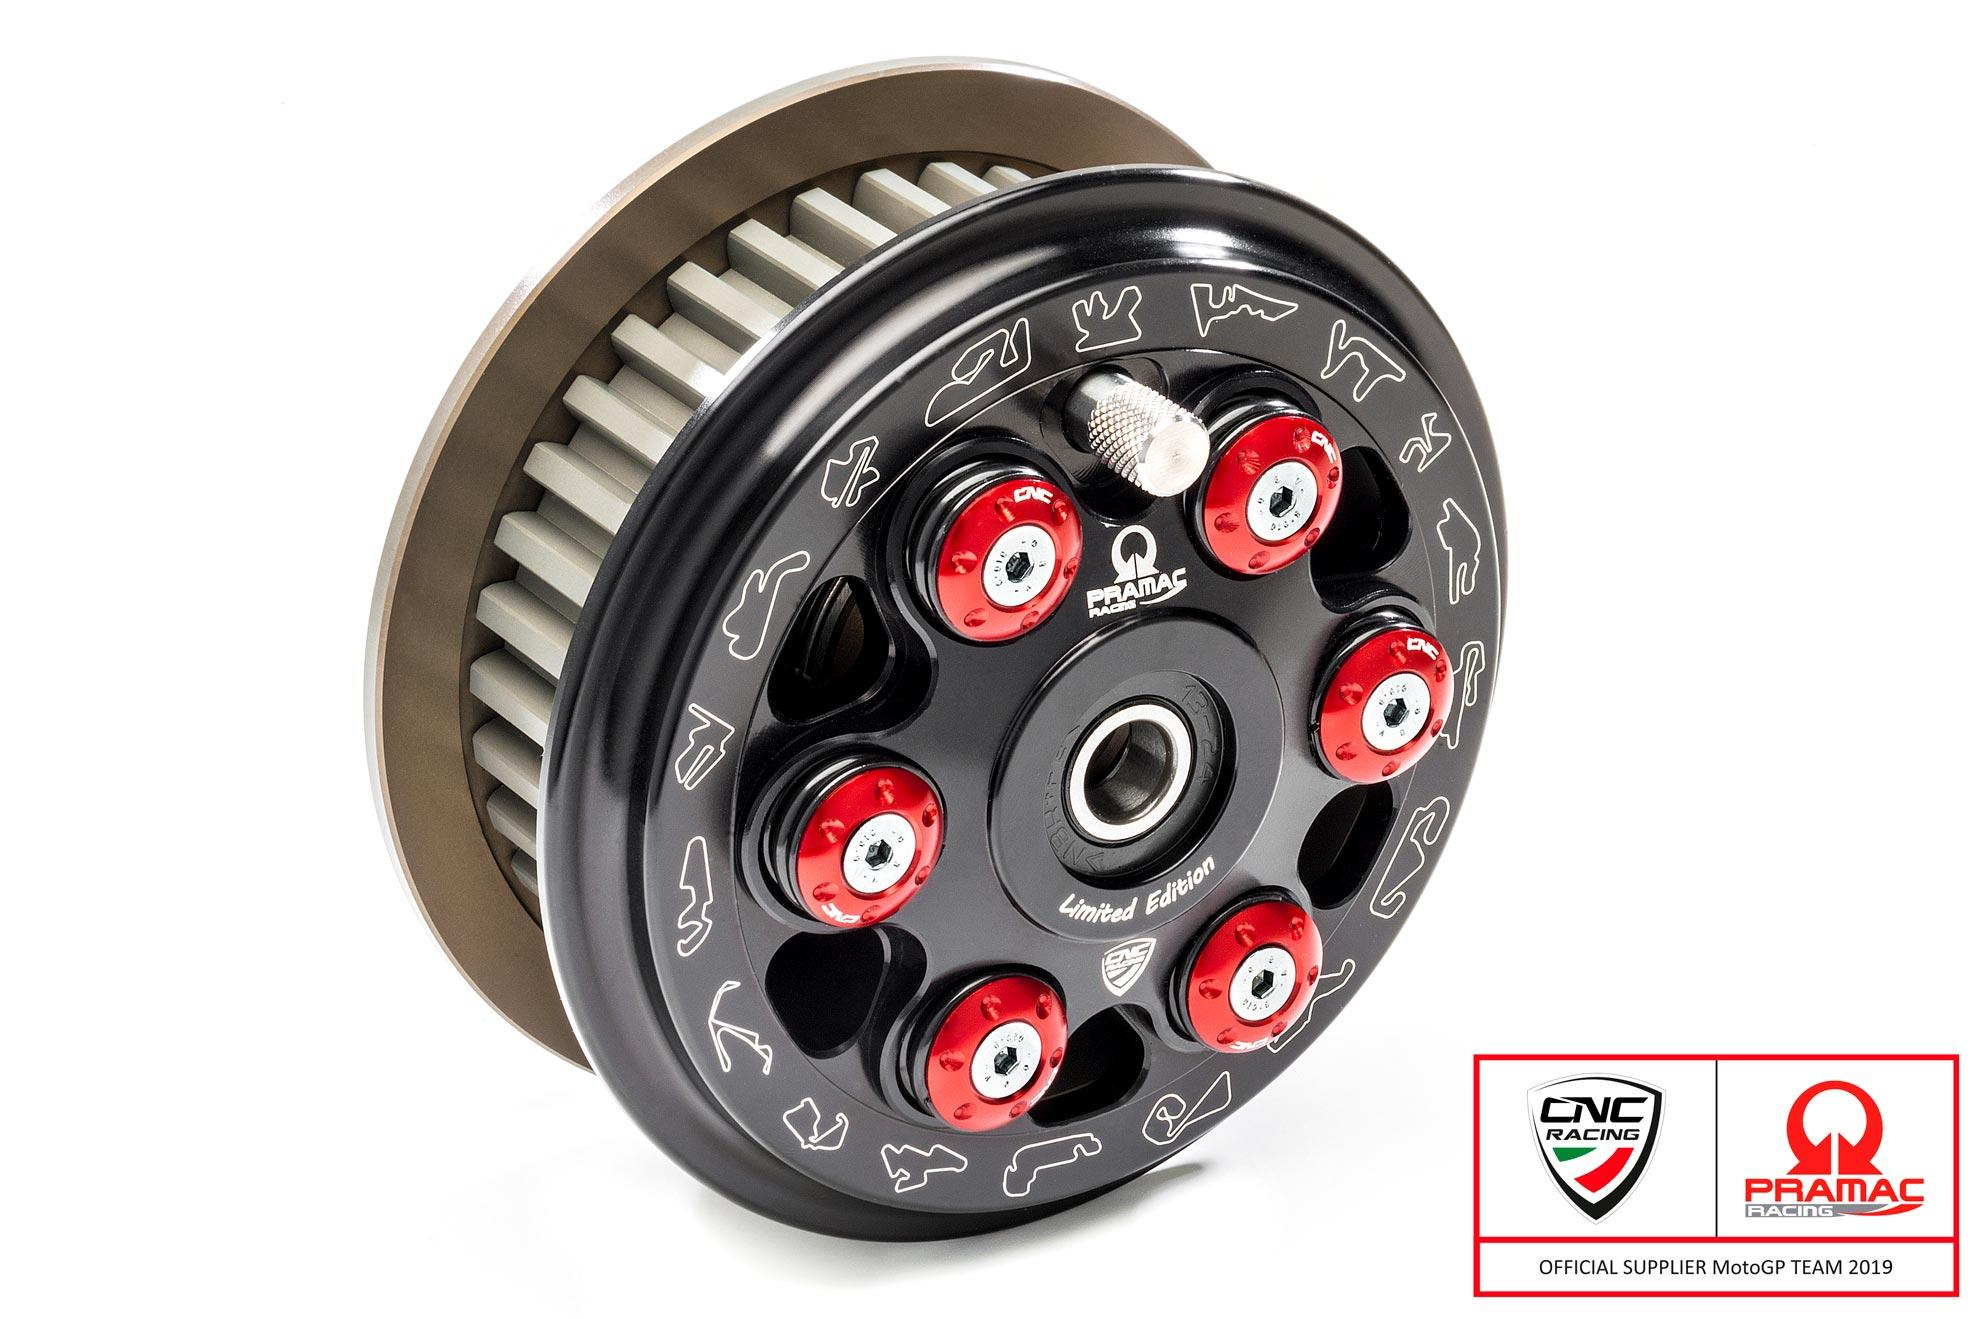 Ducati - Slipper Clutch, Slipper Clutch, CNC Racing - Averys Motorcycles